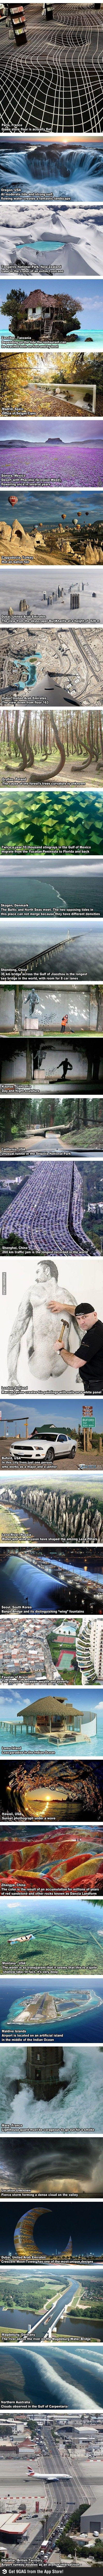 Awesomeness from places around the world